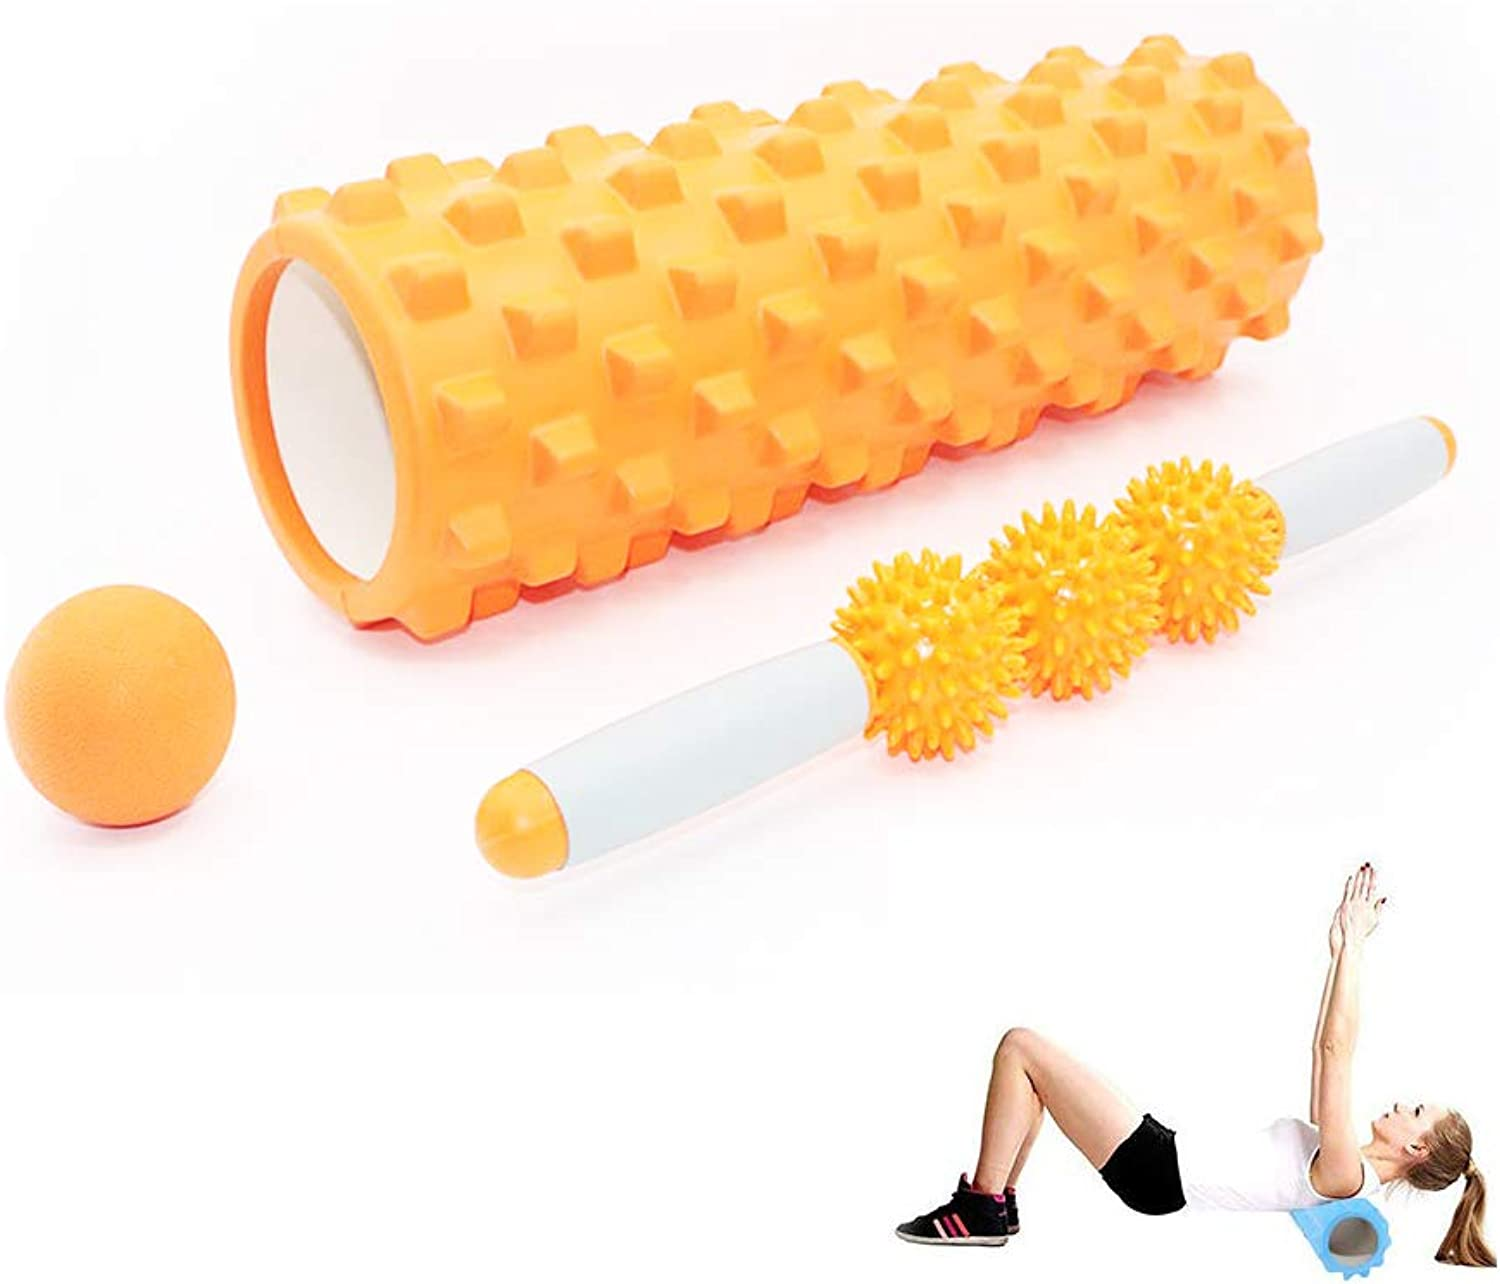 Foam Roller, Muscle Roller Stick, Massage Ball 3in1 Suit for Deep Tissue Muscle Massage, Suitable for Yoga Pilates,orange